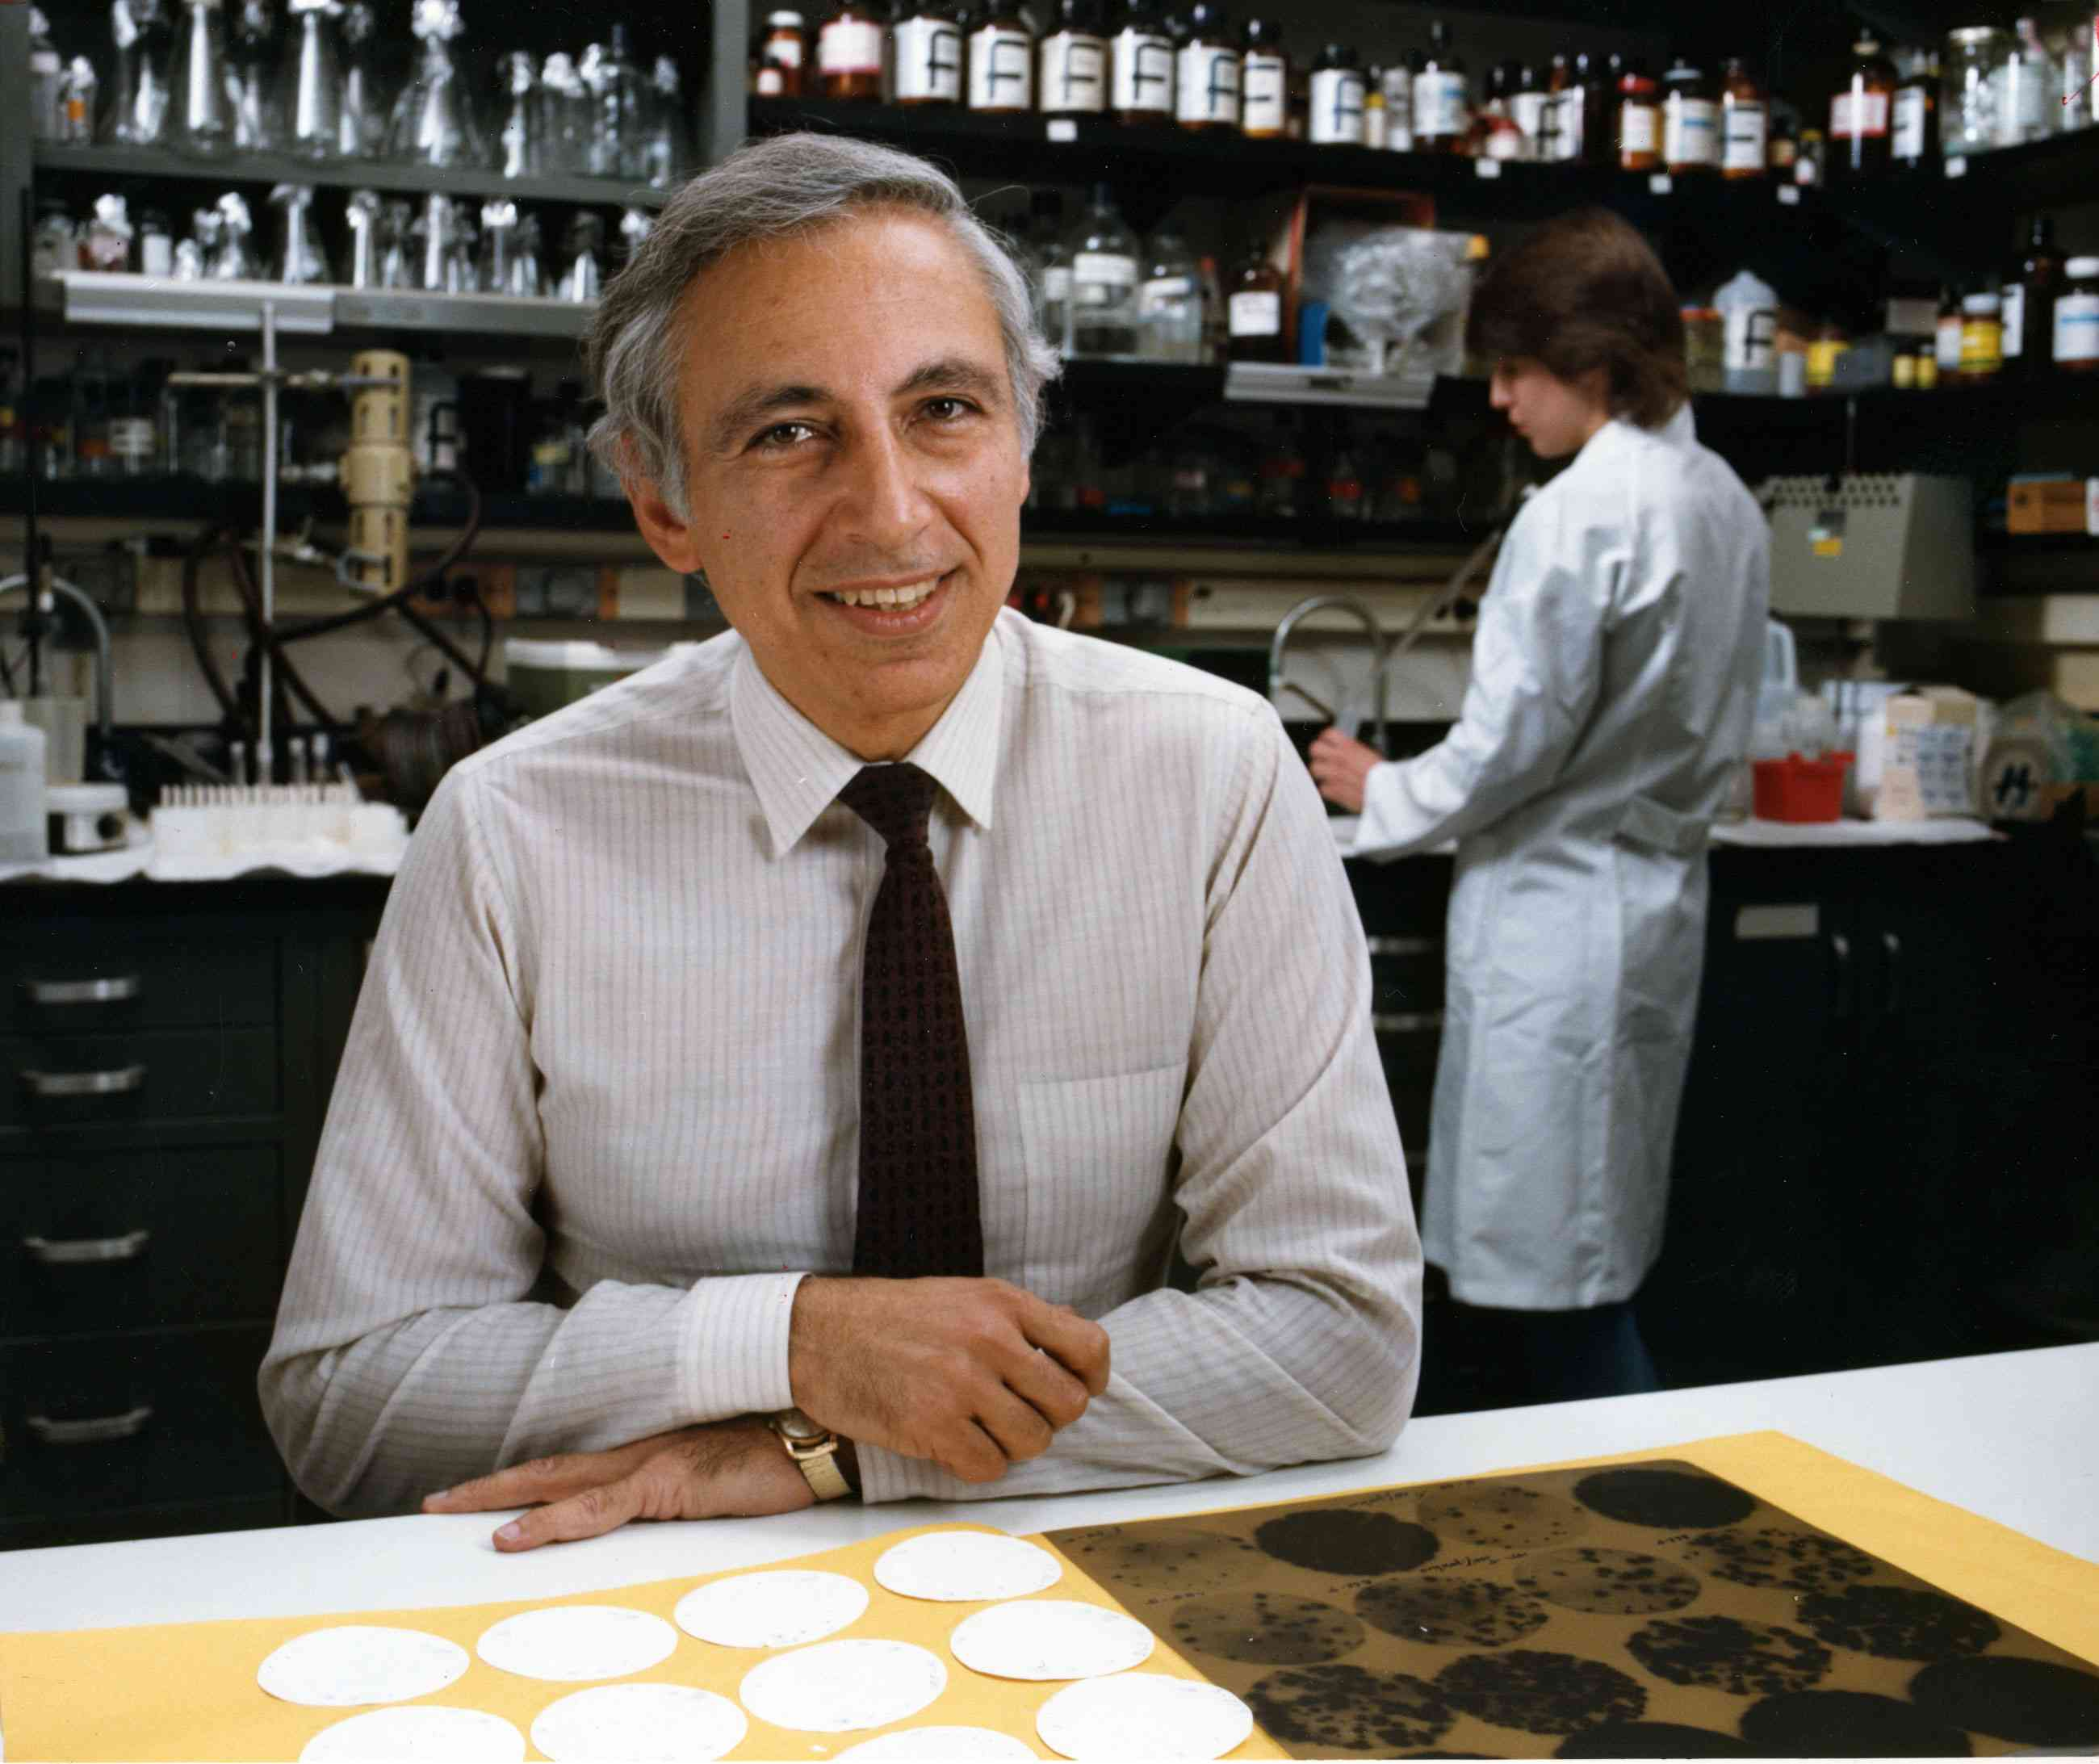 Robert Gallo, Co-Discoverer of HIV